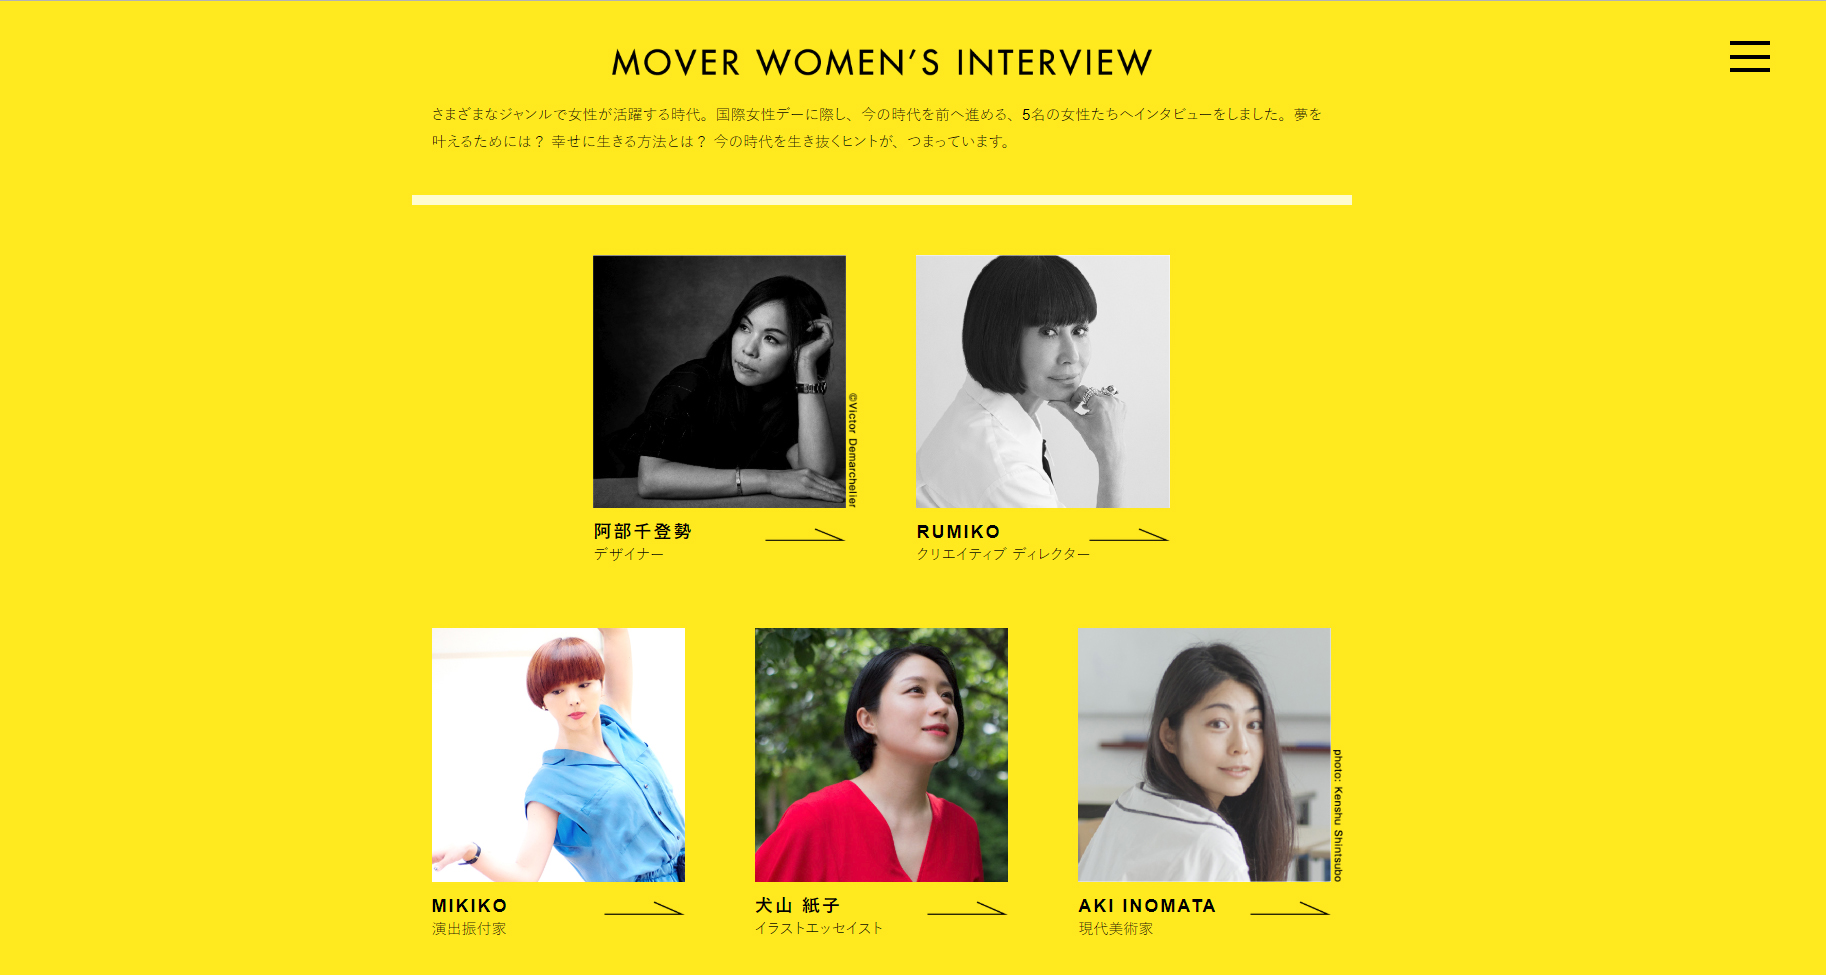 Article: MOVER WOMEN'S INTERVIEW